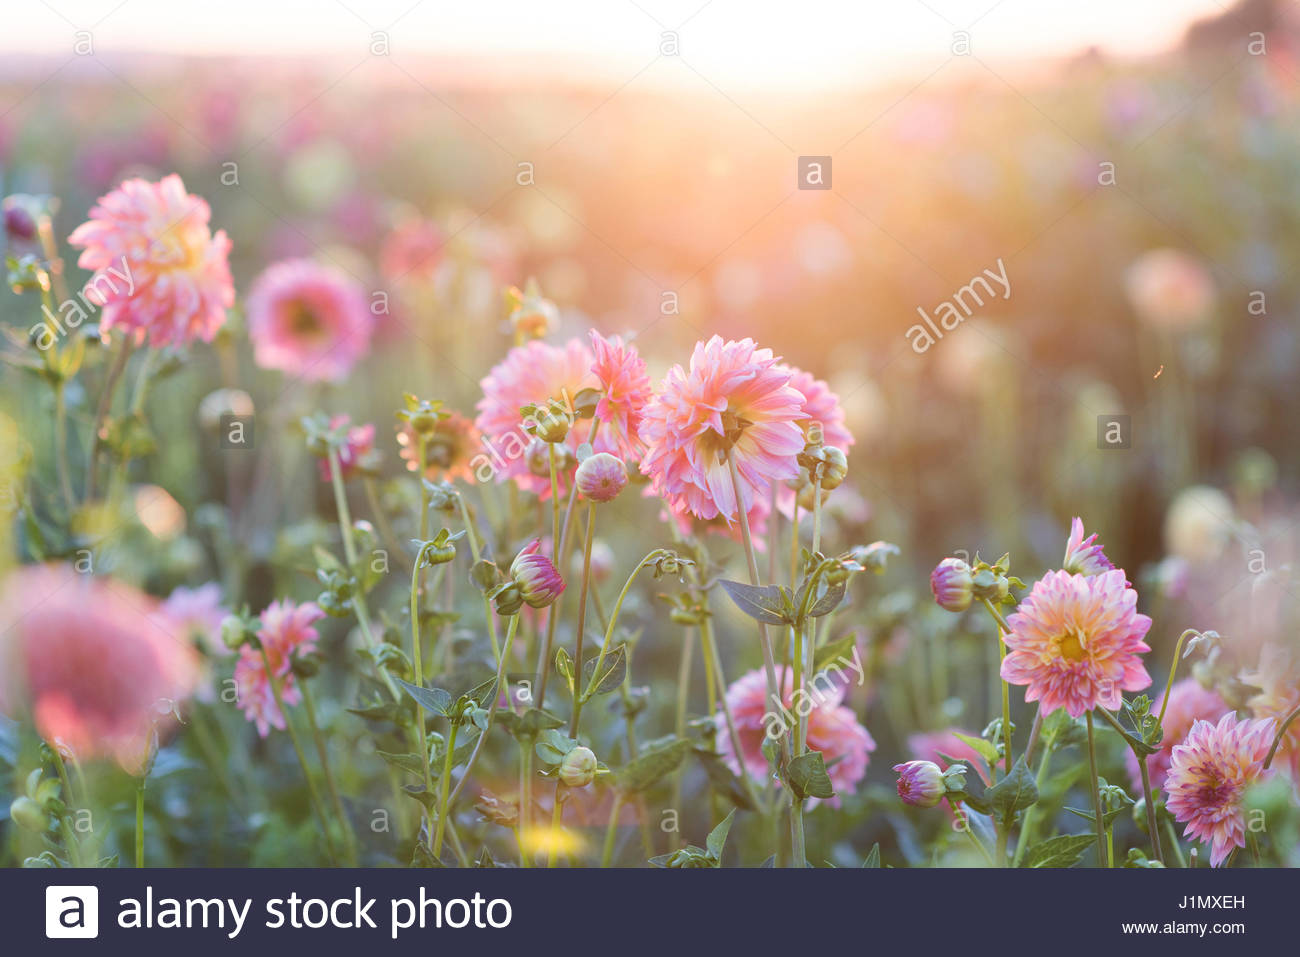 DAHLIA 'CAFE AU LAIT' GROWING IN FIELD - Stock Image